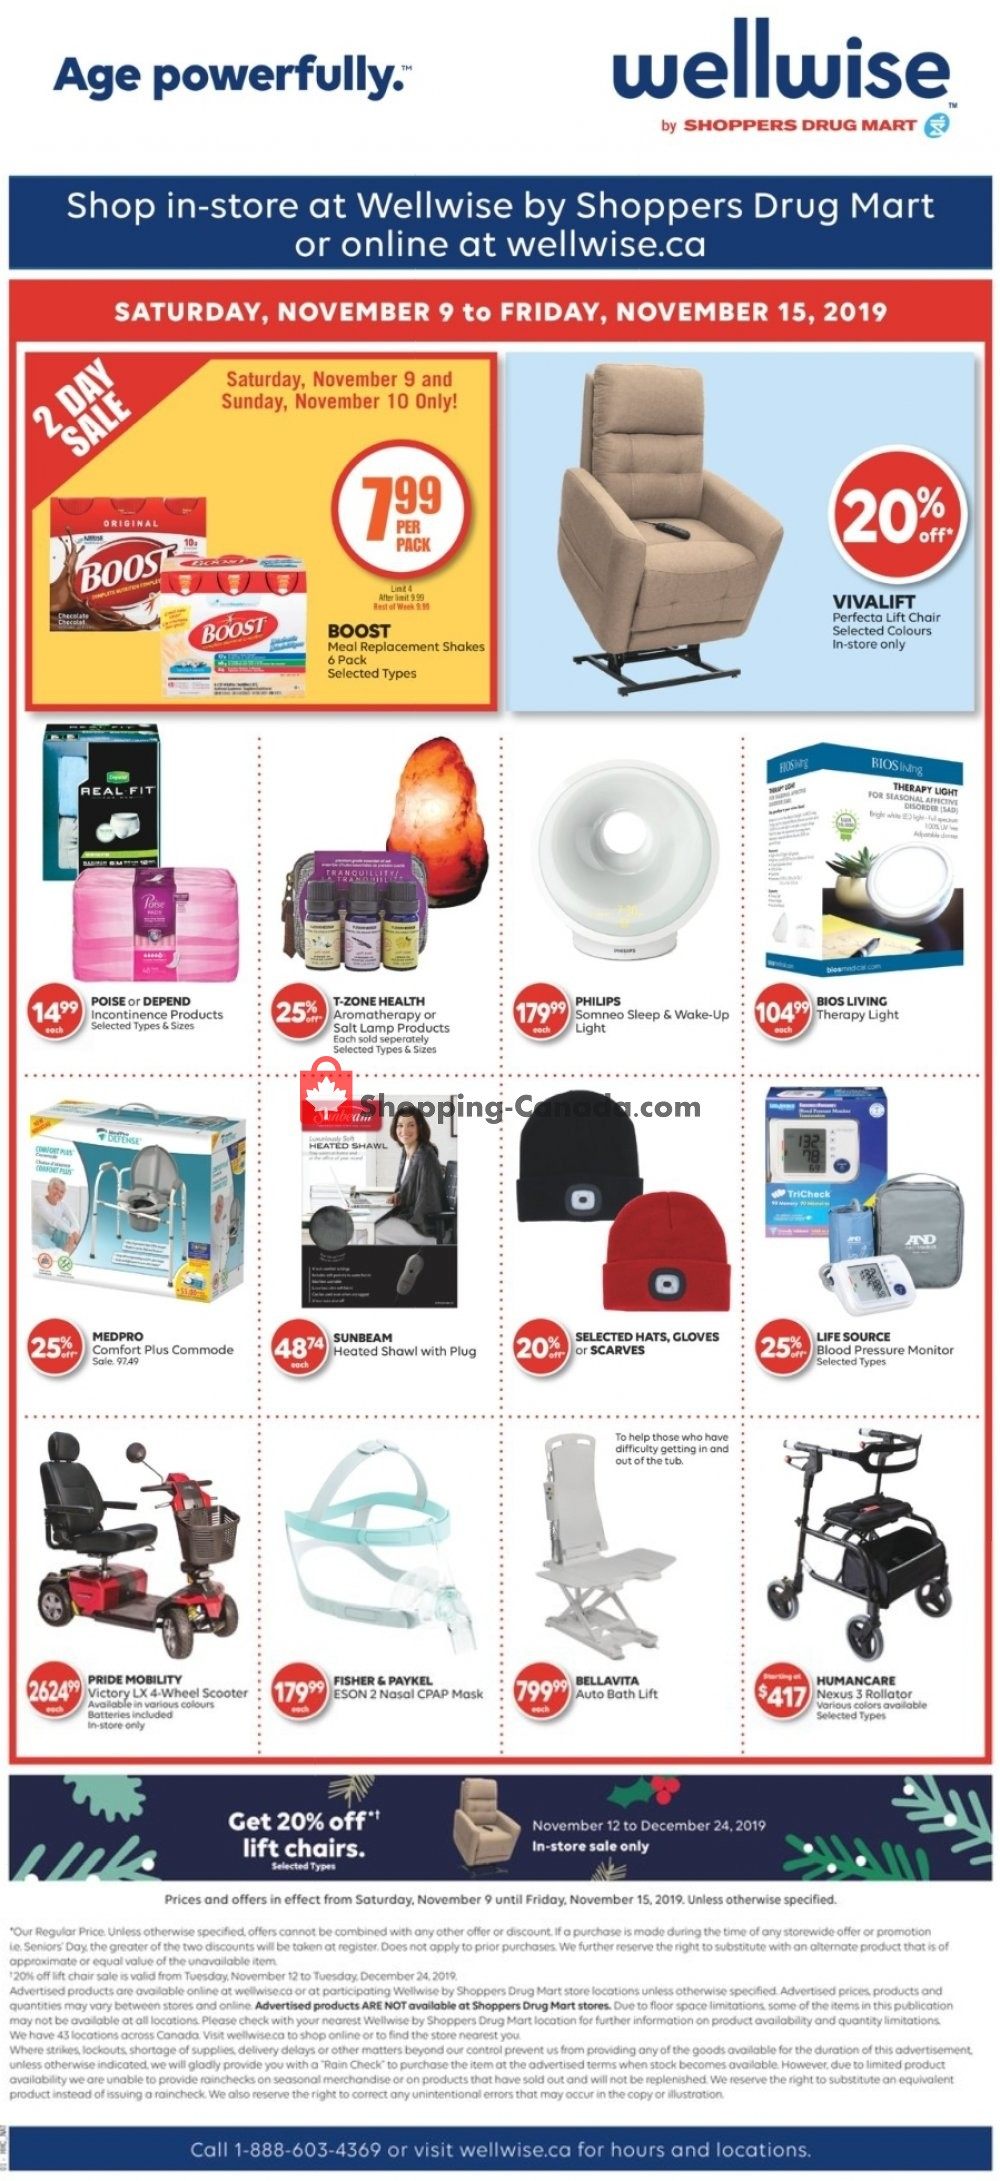 Flyer WellWise by Shoppers Drug Mart Canada - from Saturday November 9, 2019 to Friday November 15, 2019